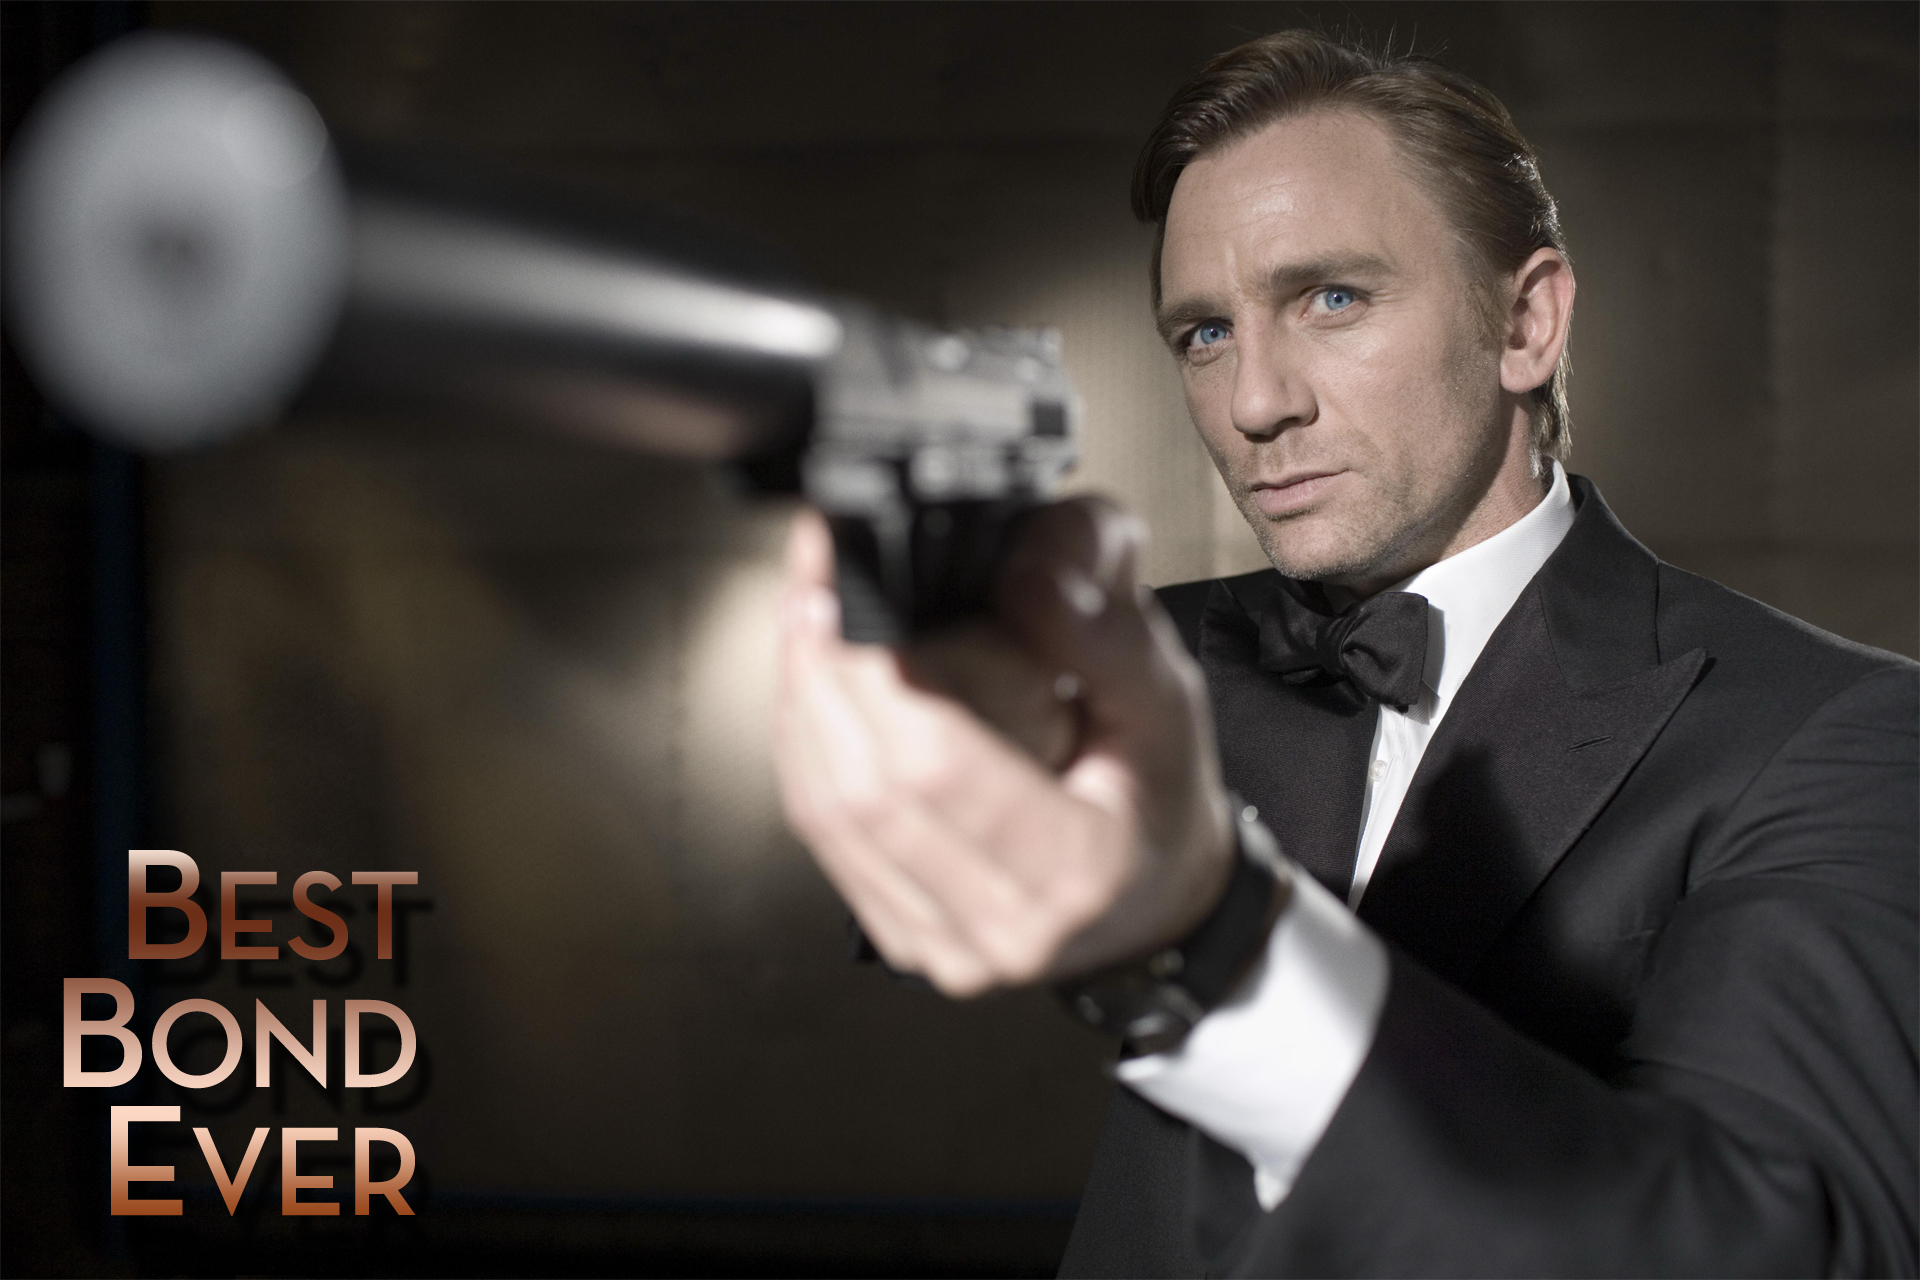 James bond daniel craig HD Wallpaper